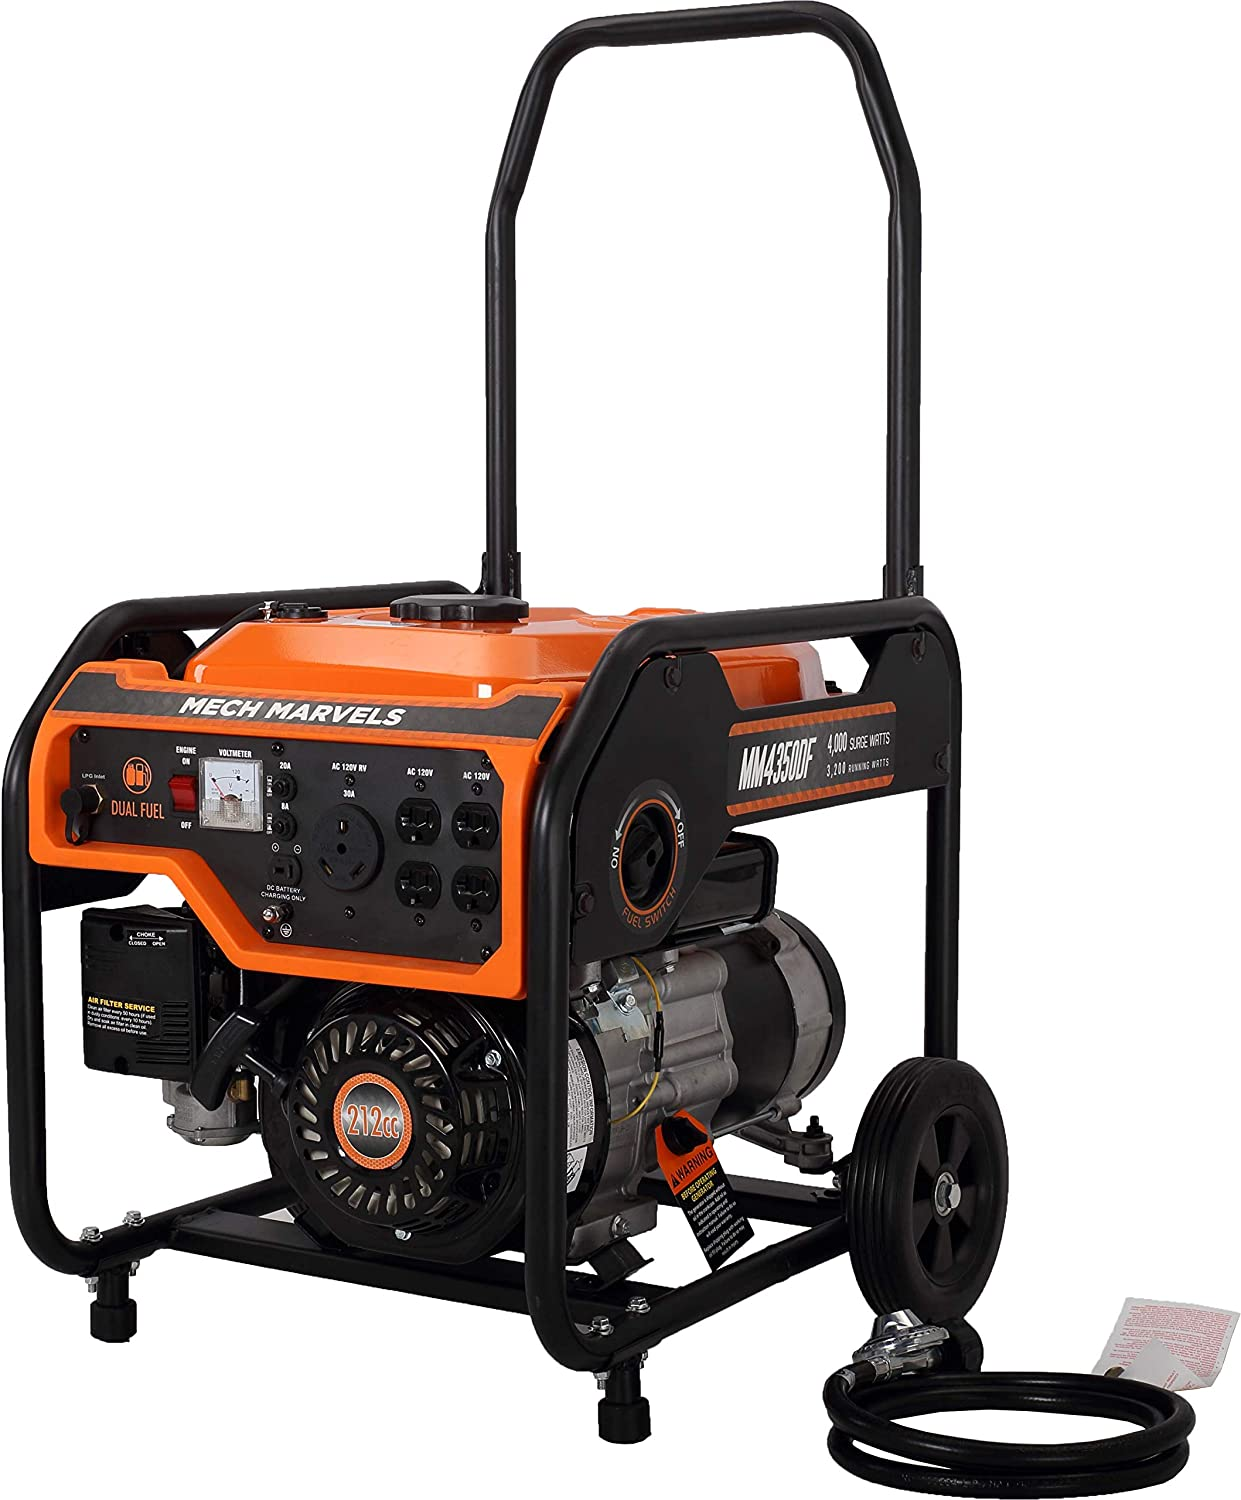 Mech Marvels 4000 Watt Dual Fuel Portable Power Generator with RV Outlet, CARB Compliant MM4350DF